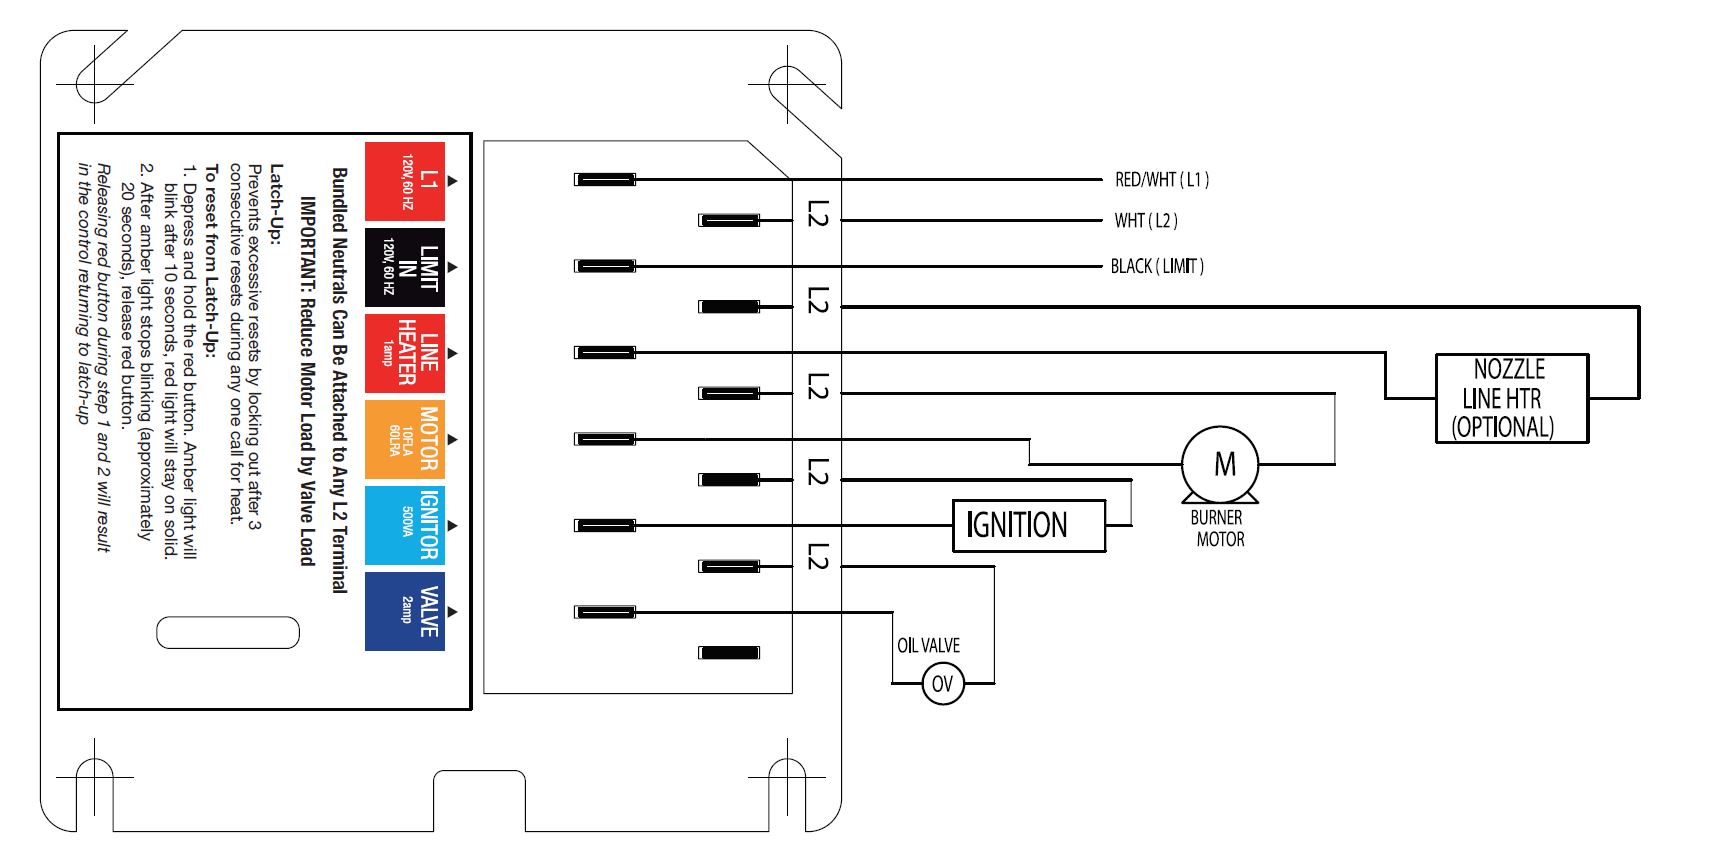 Honeywell Oil Furnace Wiring Diagram Get Free Image About Wiring